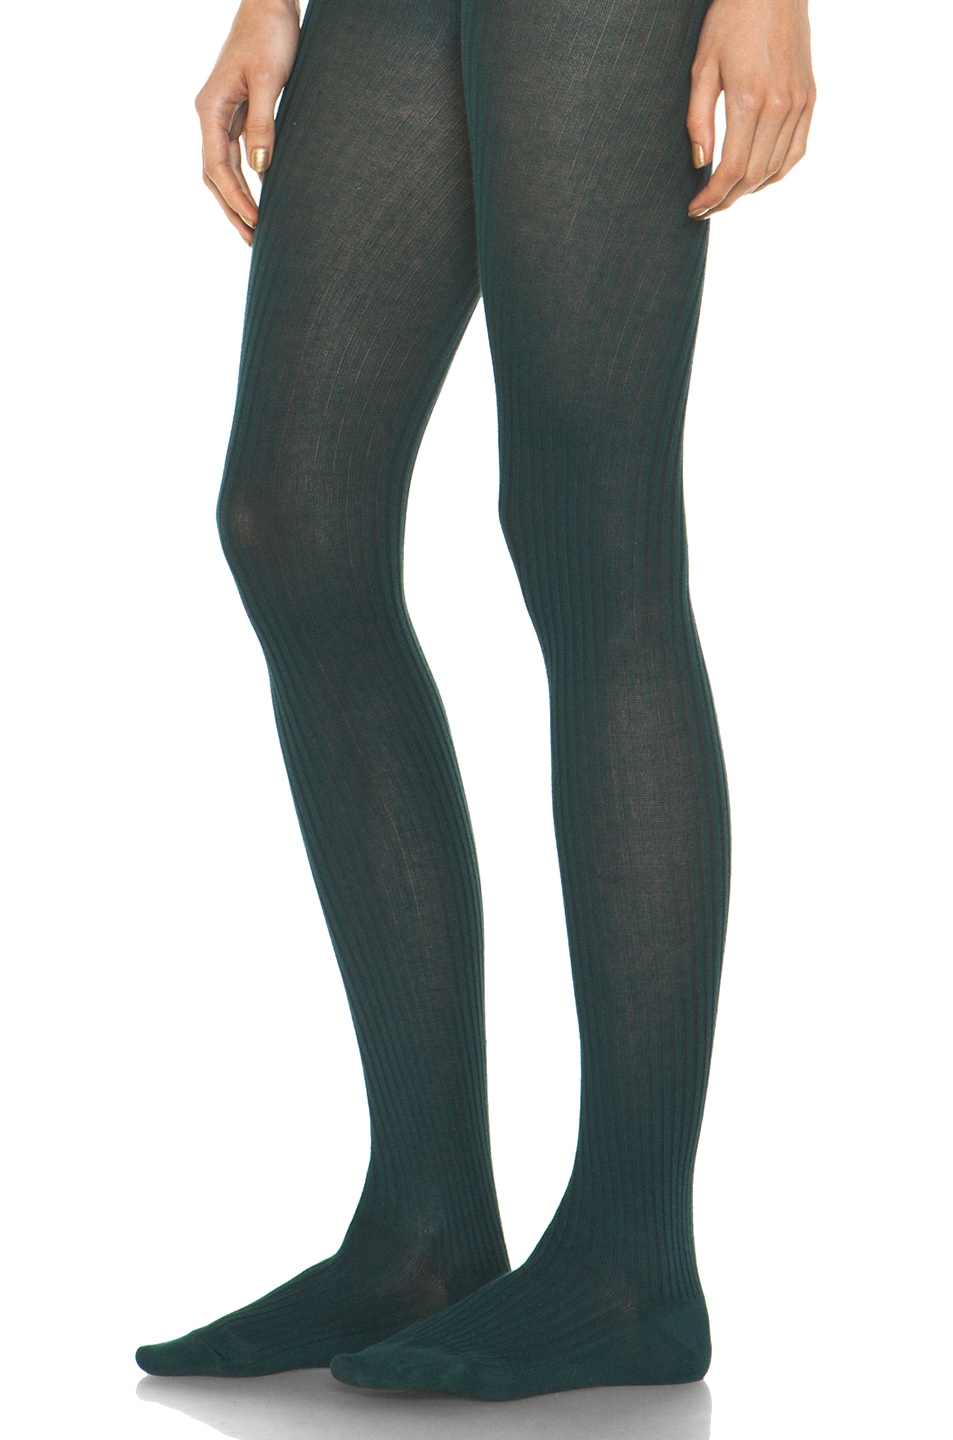 Image 2 of A.P.C. Collant Tights in Blue Canard